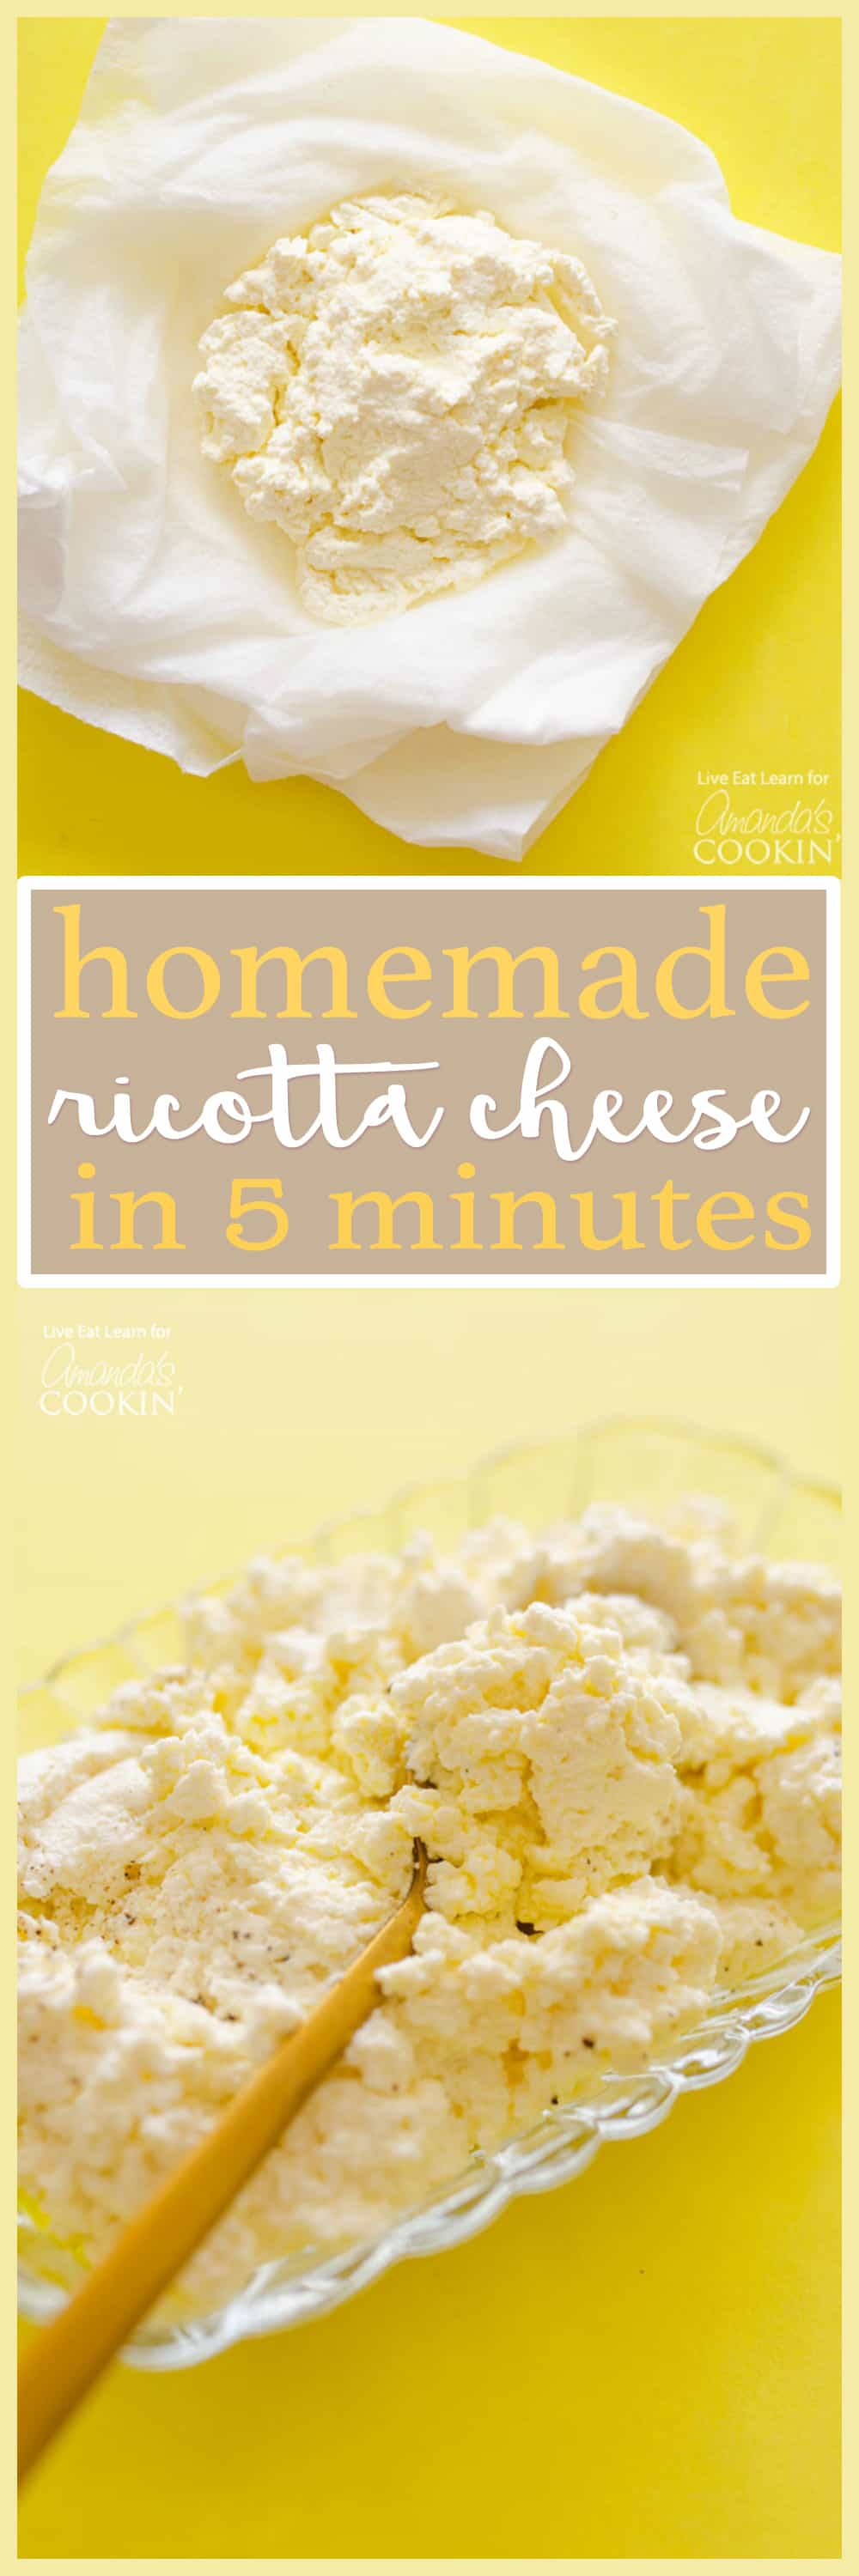 For homemade ricotta in 5 minutes, you'll need a microwave, some milk, lemon, and salt. Don't worry about the hassle of a thermometer and cheesecloth!